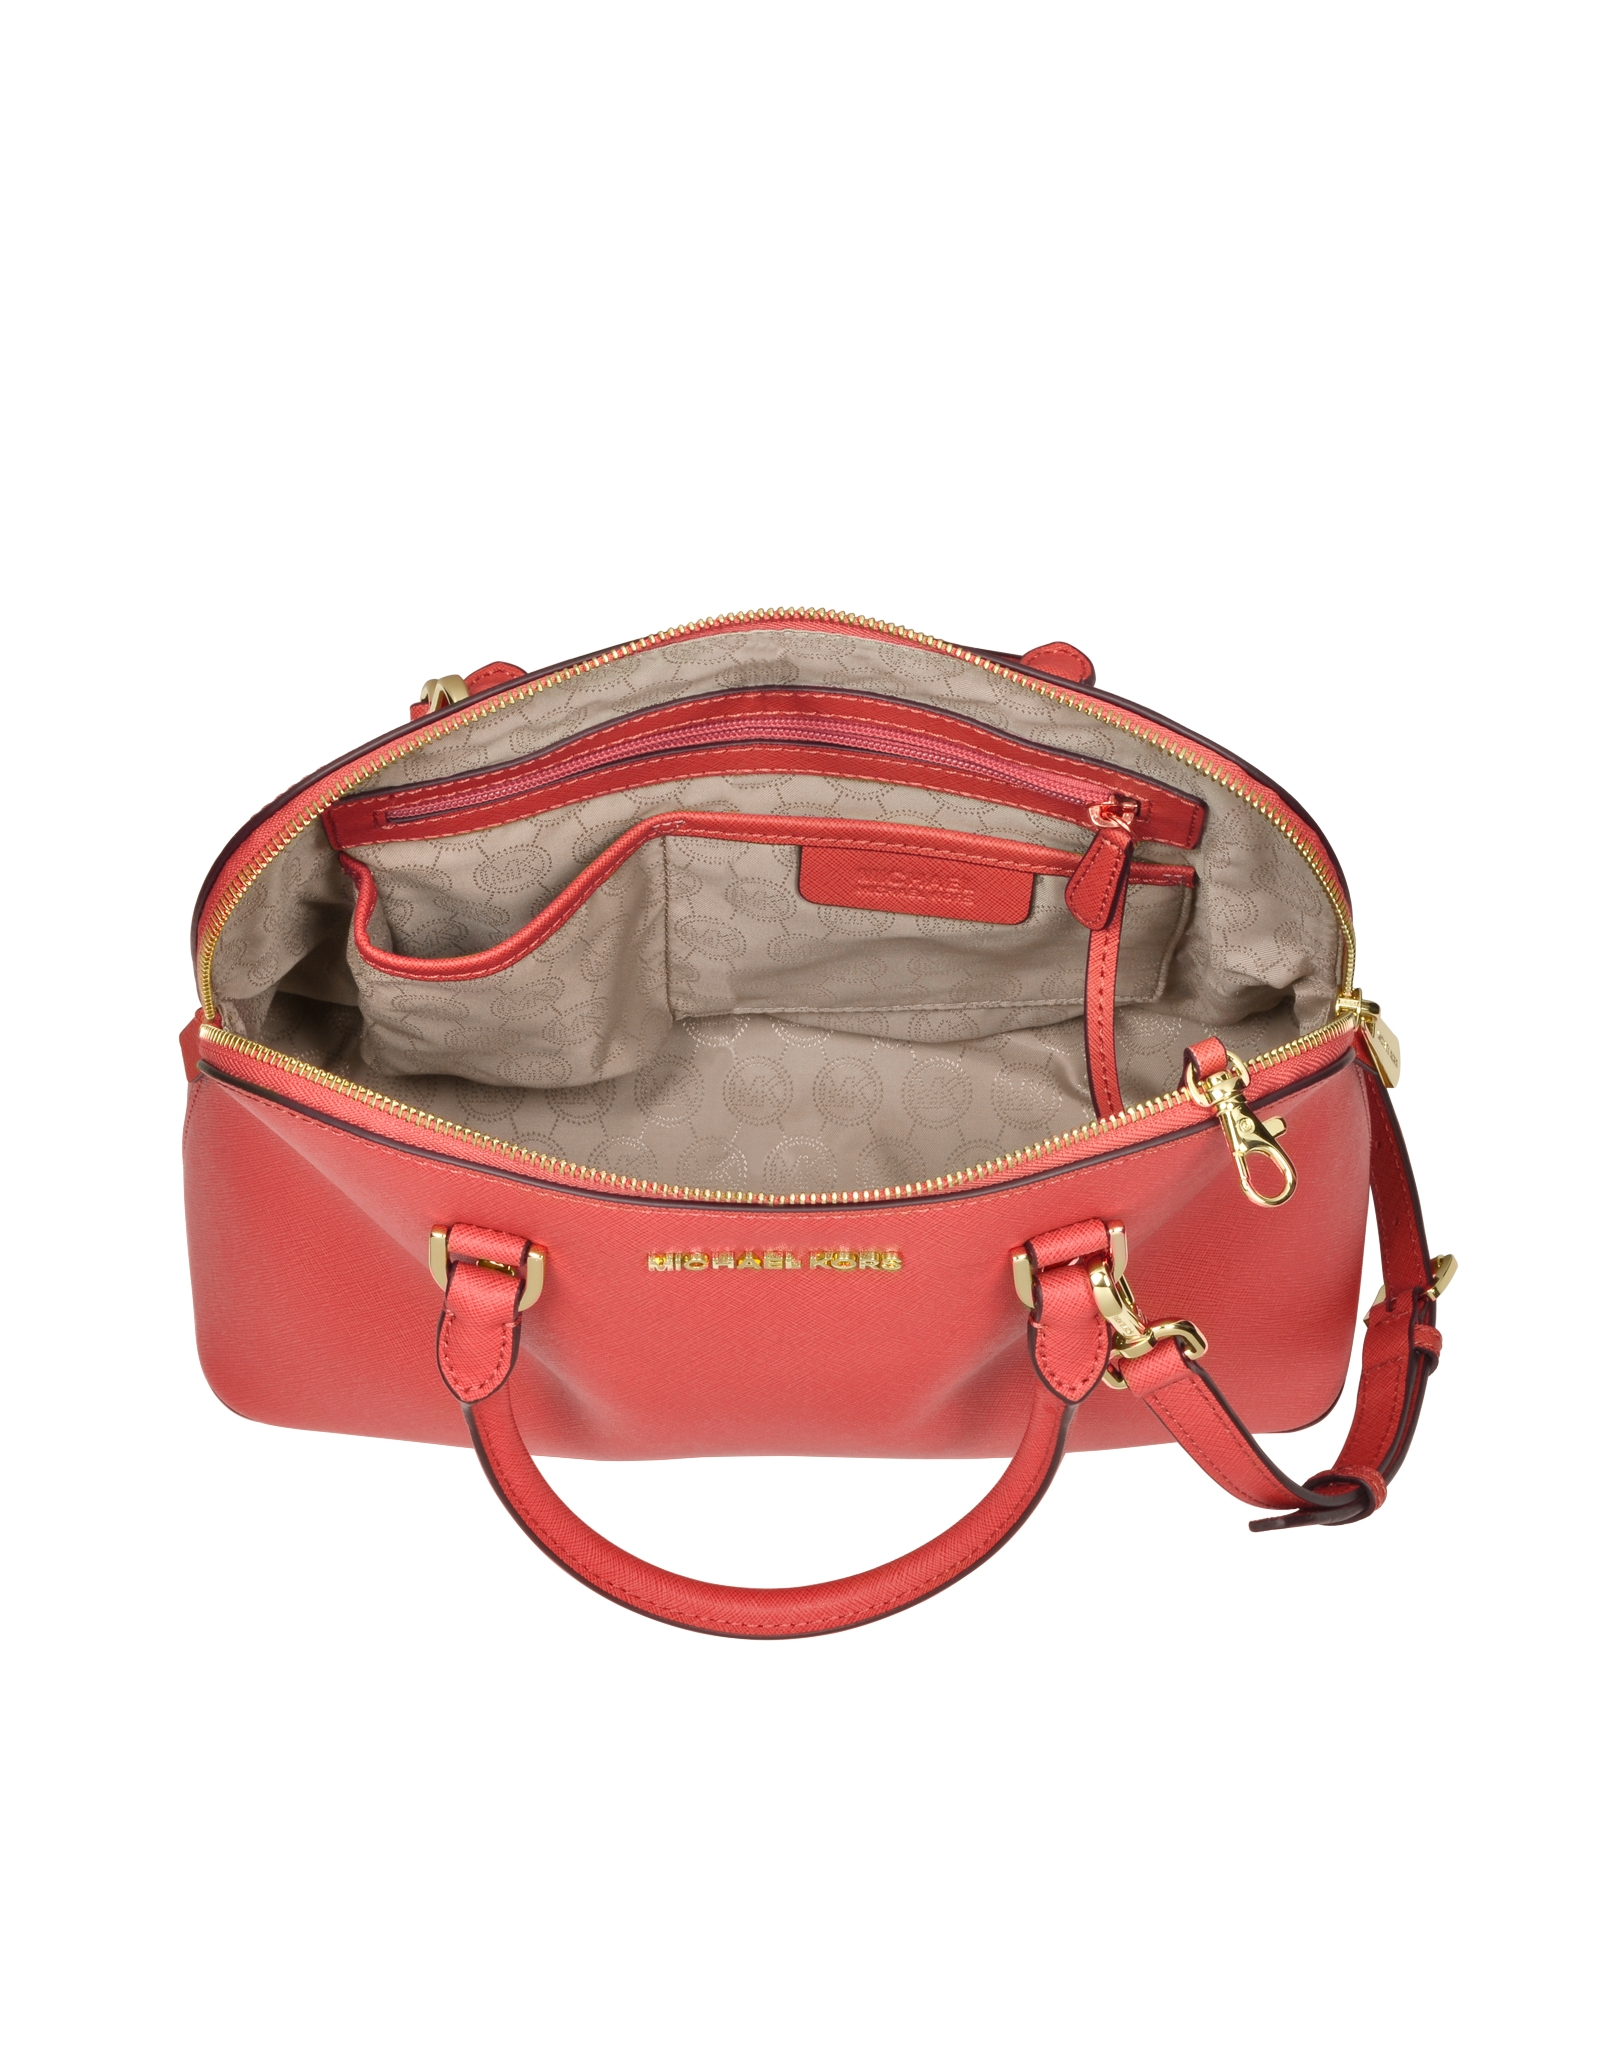 4ca0bfe695d8b9 Michael Kors Cindy Large Saffiano-Leather Satchel in Red - Lyst